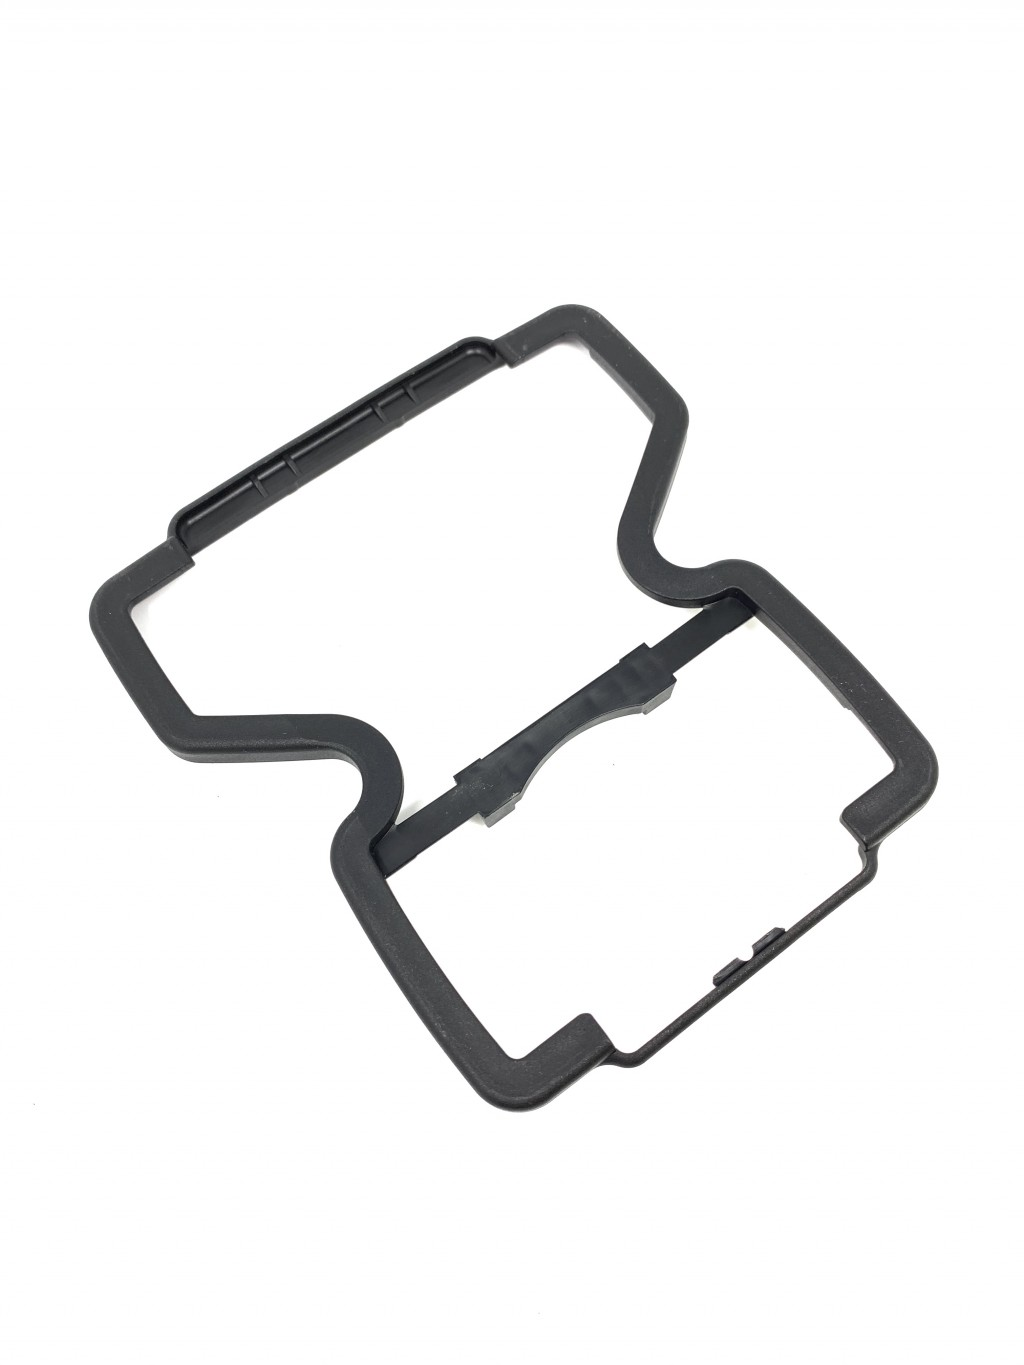 Thule 52922 rear bracket cover